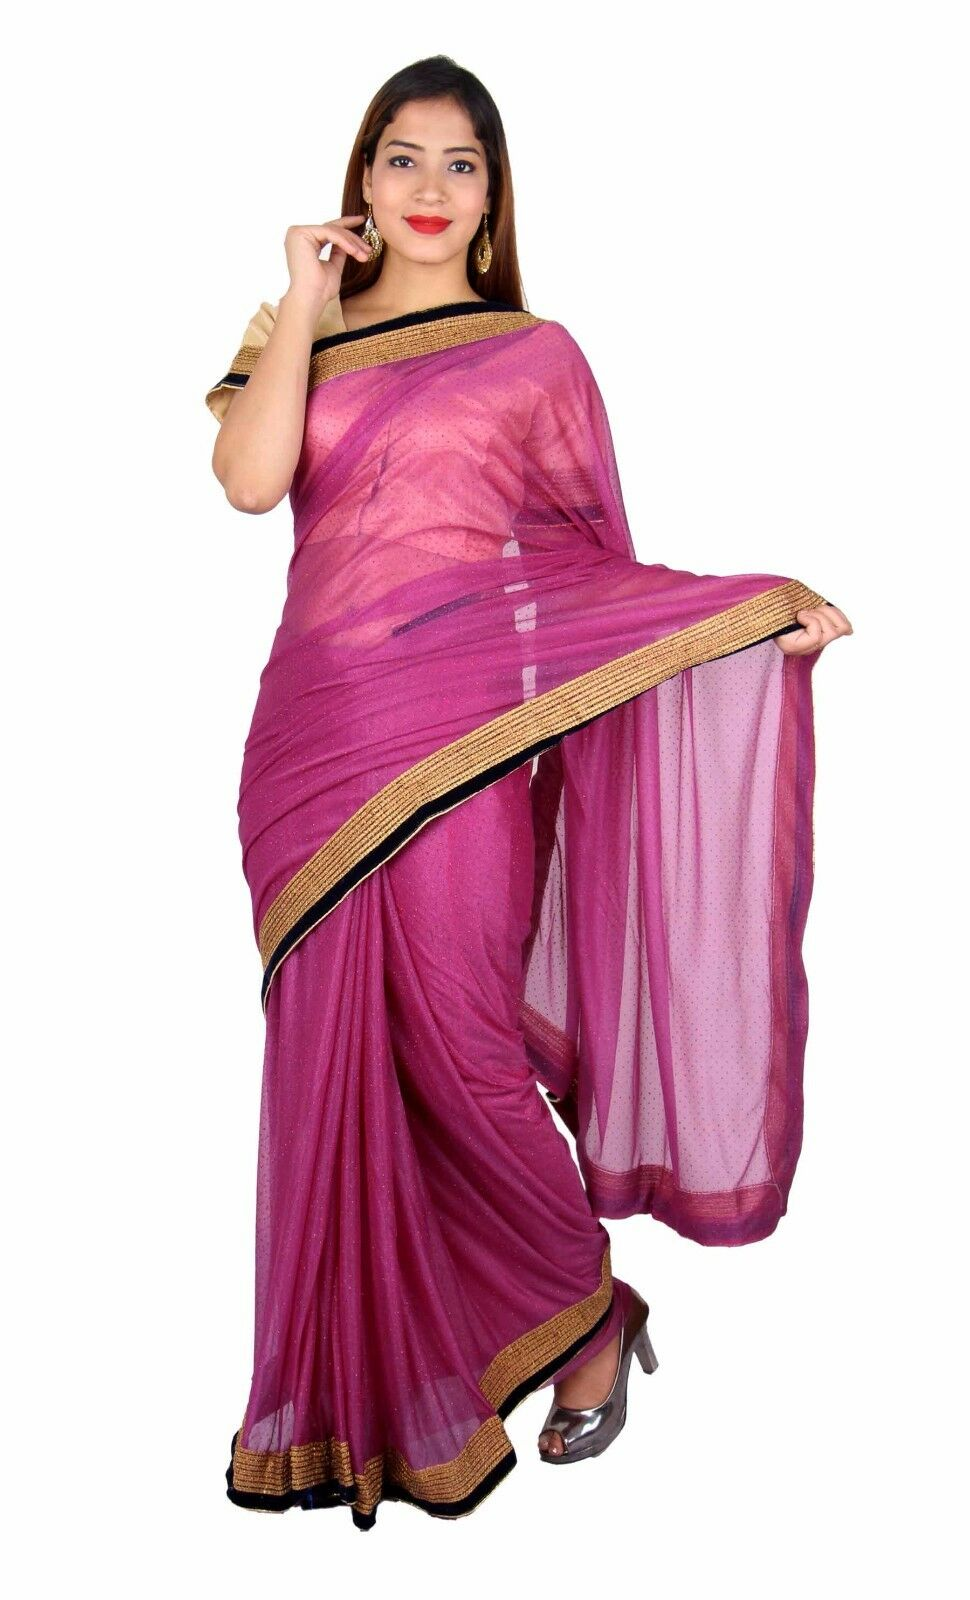 Indian border shimmer saree with blouse for Bollywood theme party London 7266